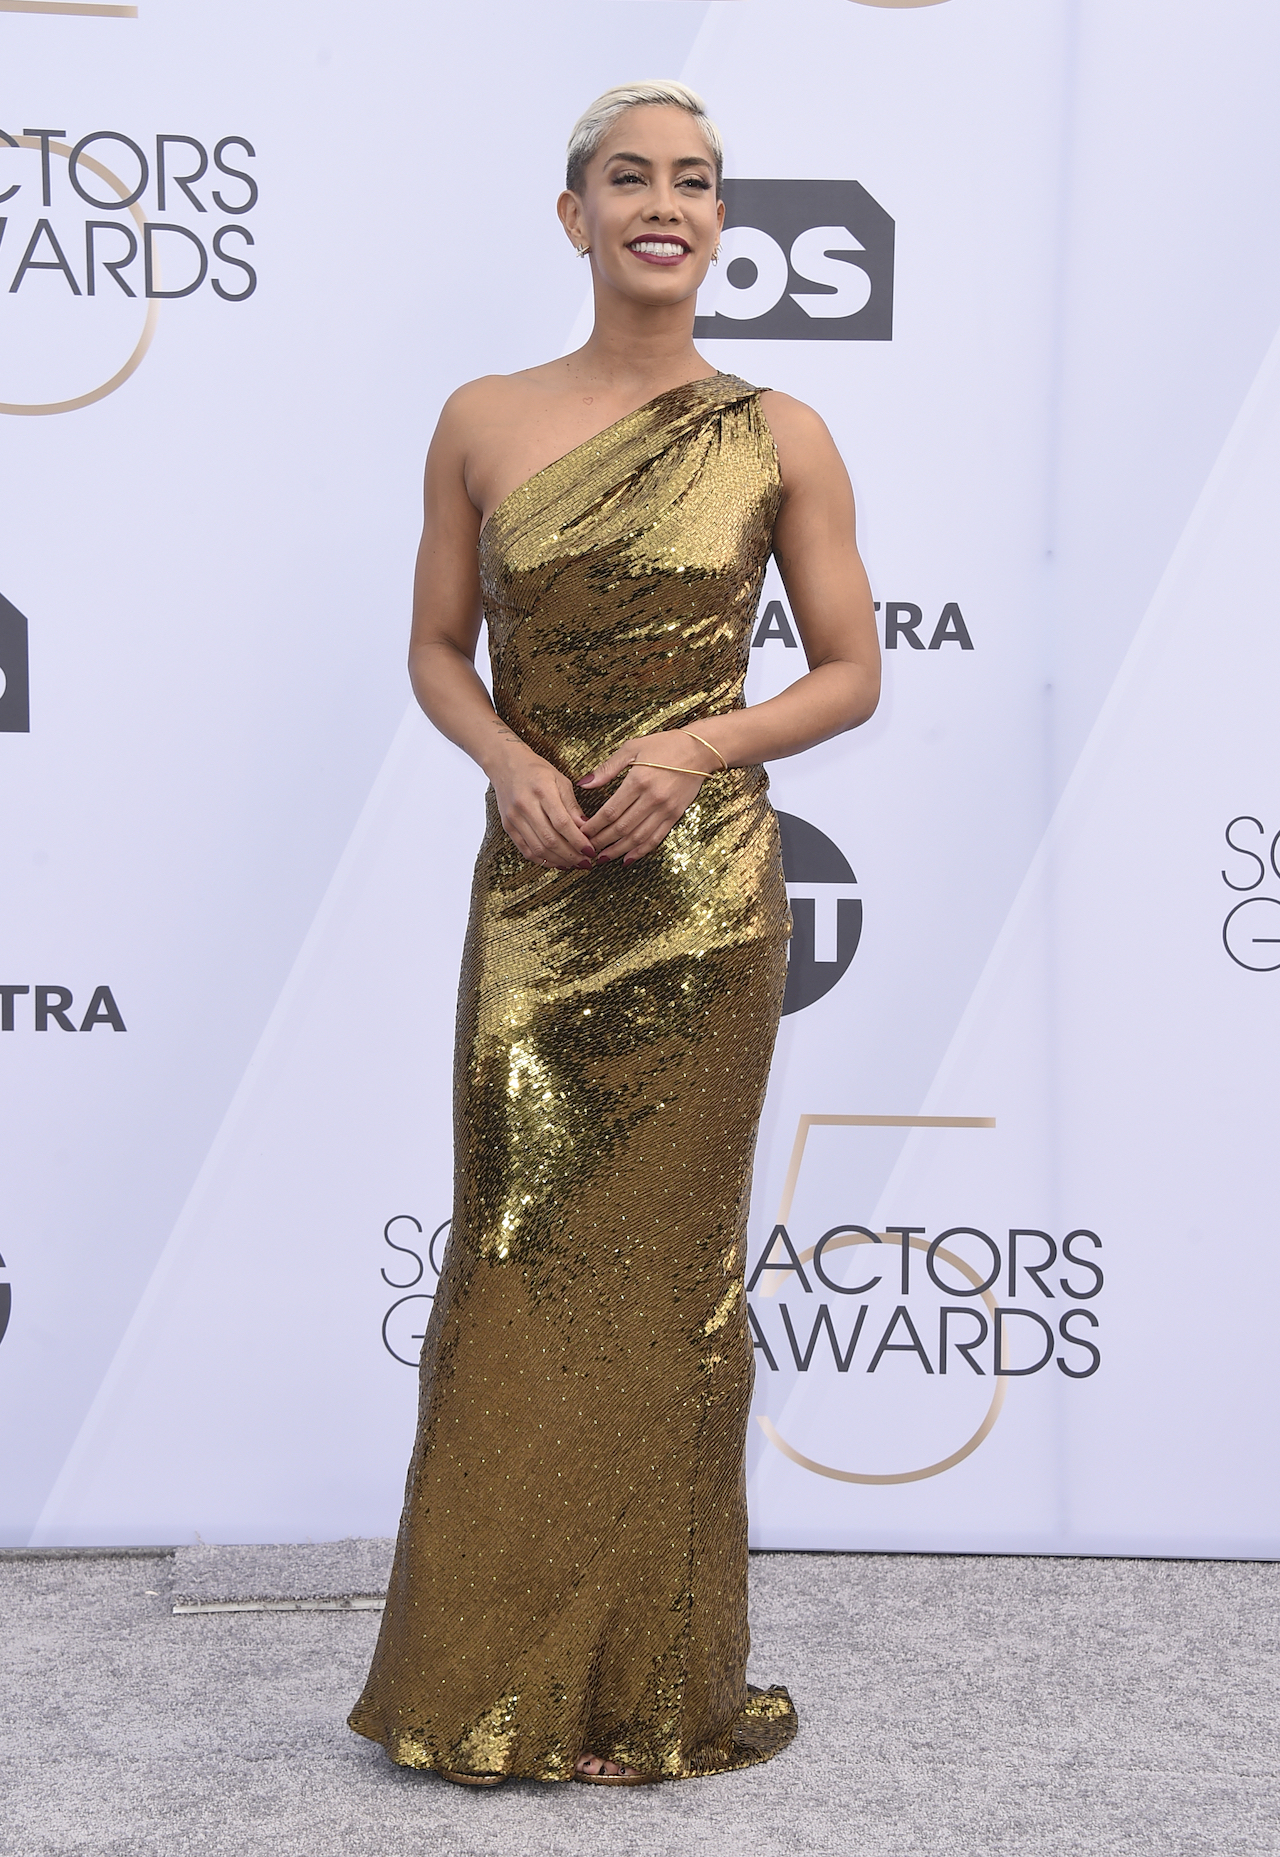 <div class='meta'><div class='origin-logo' data-origin='AP'></div><span class='caption-text' data-credit='Jordan Strauss/Invision/AP'>Sibley Scoles arrives at the 25th annual Screen Actors Guild Awards at the Shrine Auditorium & Expo Hall on Sunday, Jan. 27, 2019, in Los Angeles.</span></div>